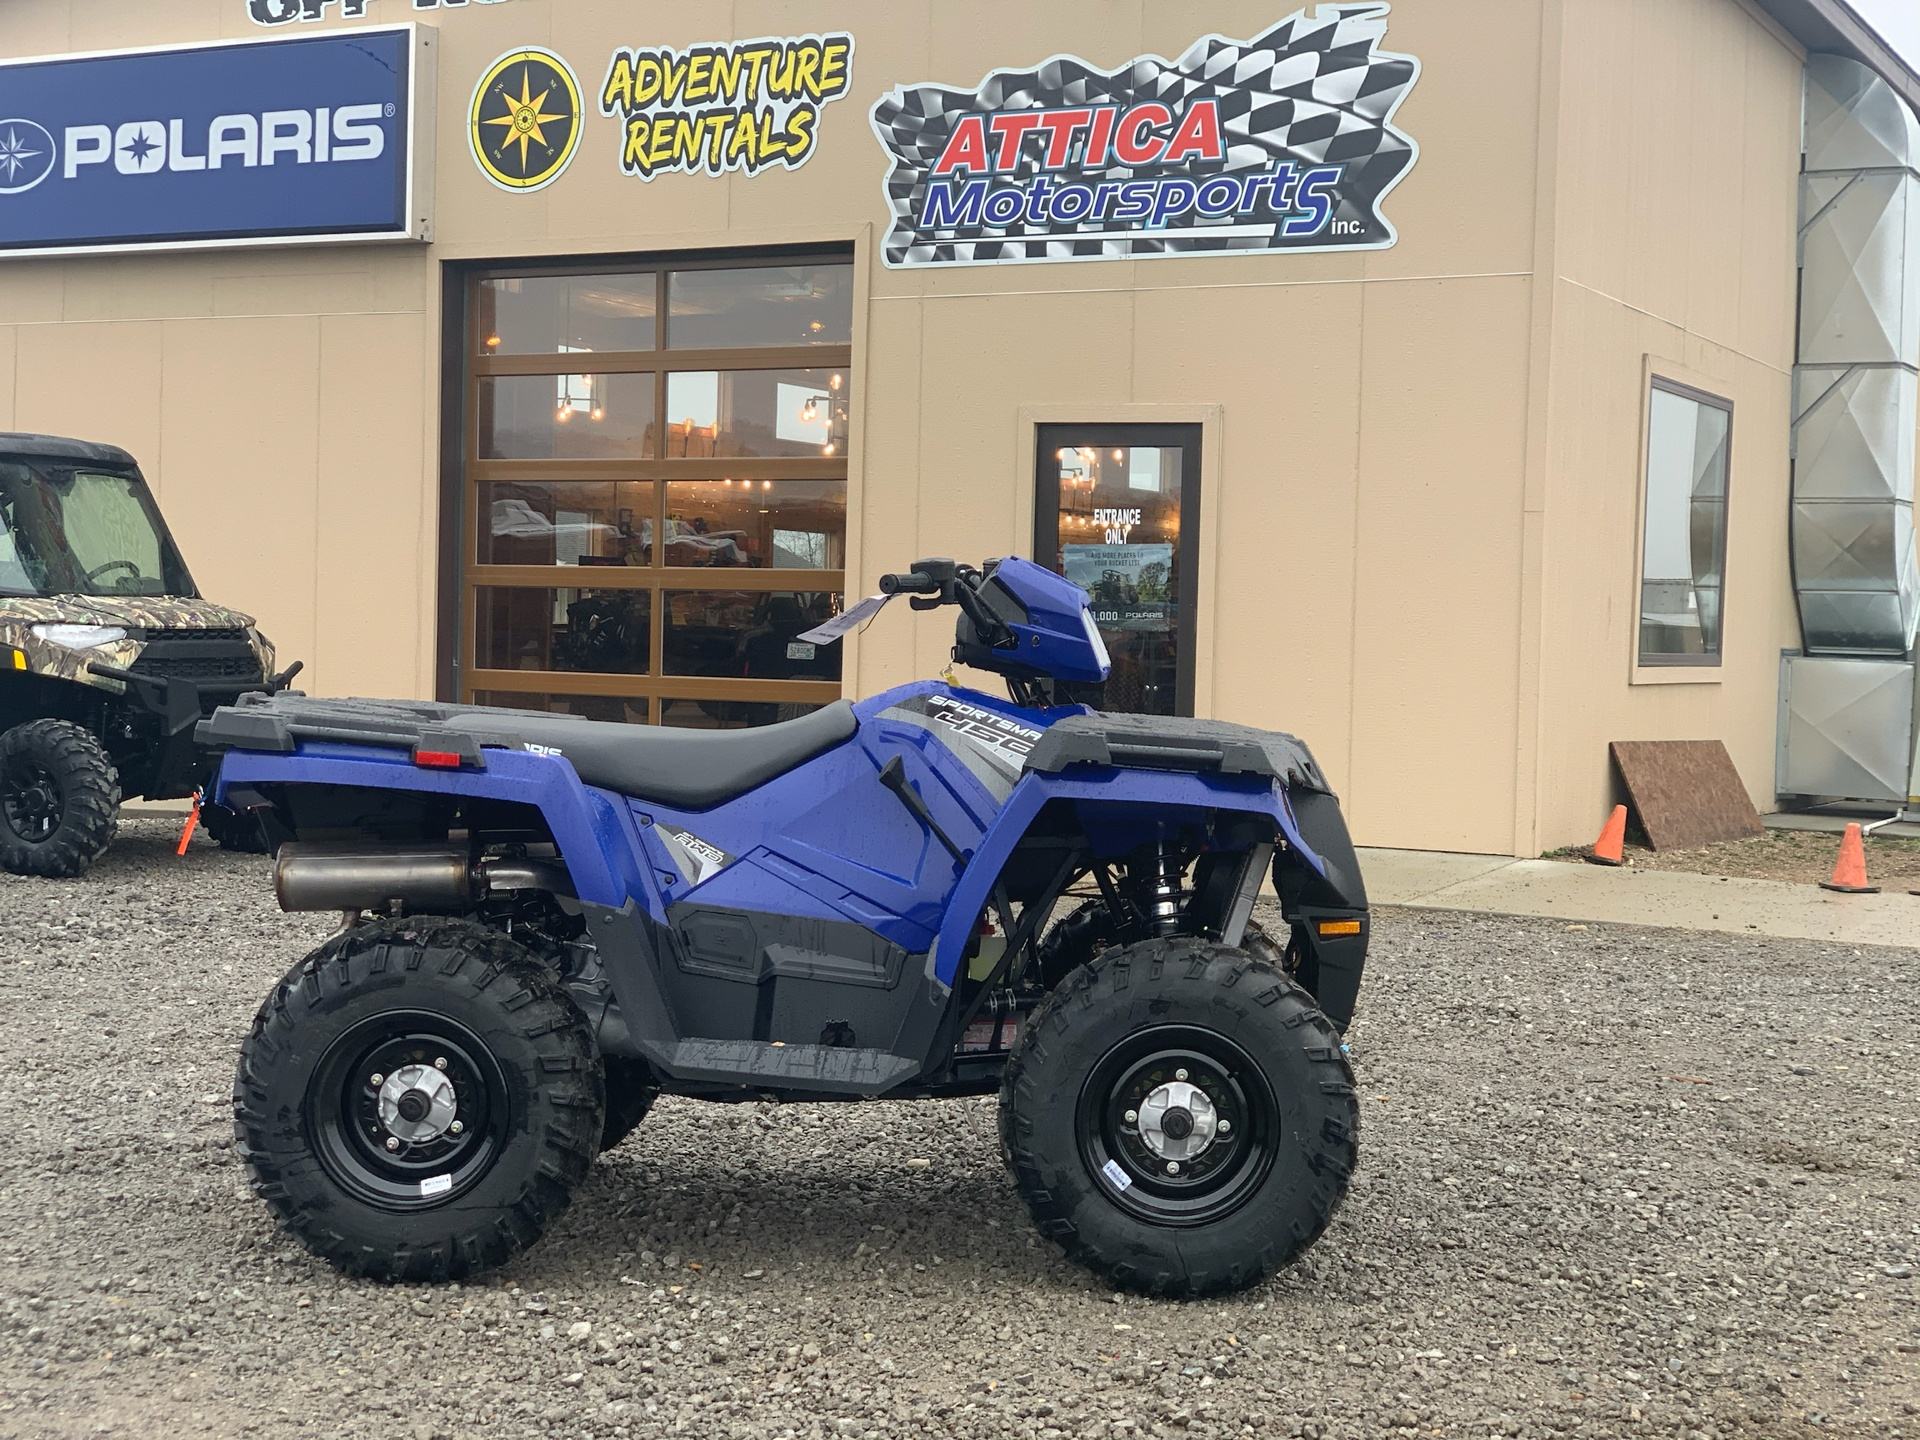 2020 Polaris Sportsman 450 H.O. in Attica, Indiana - Photo 1